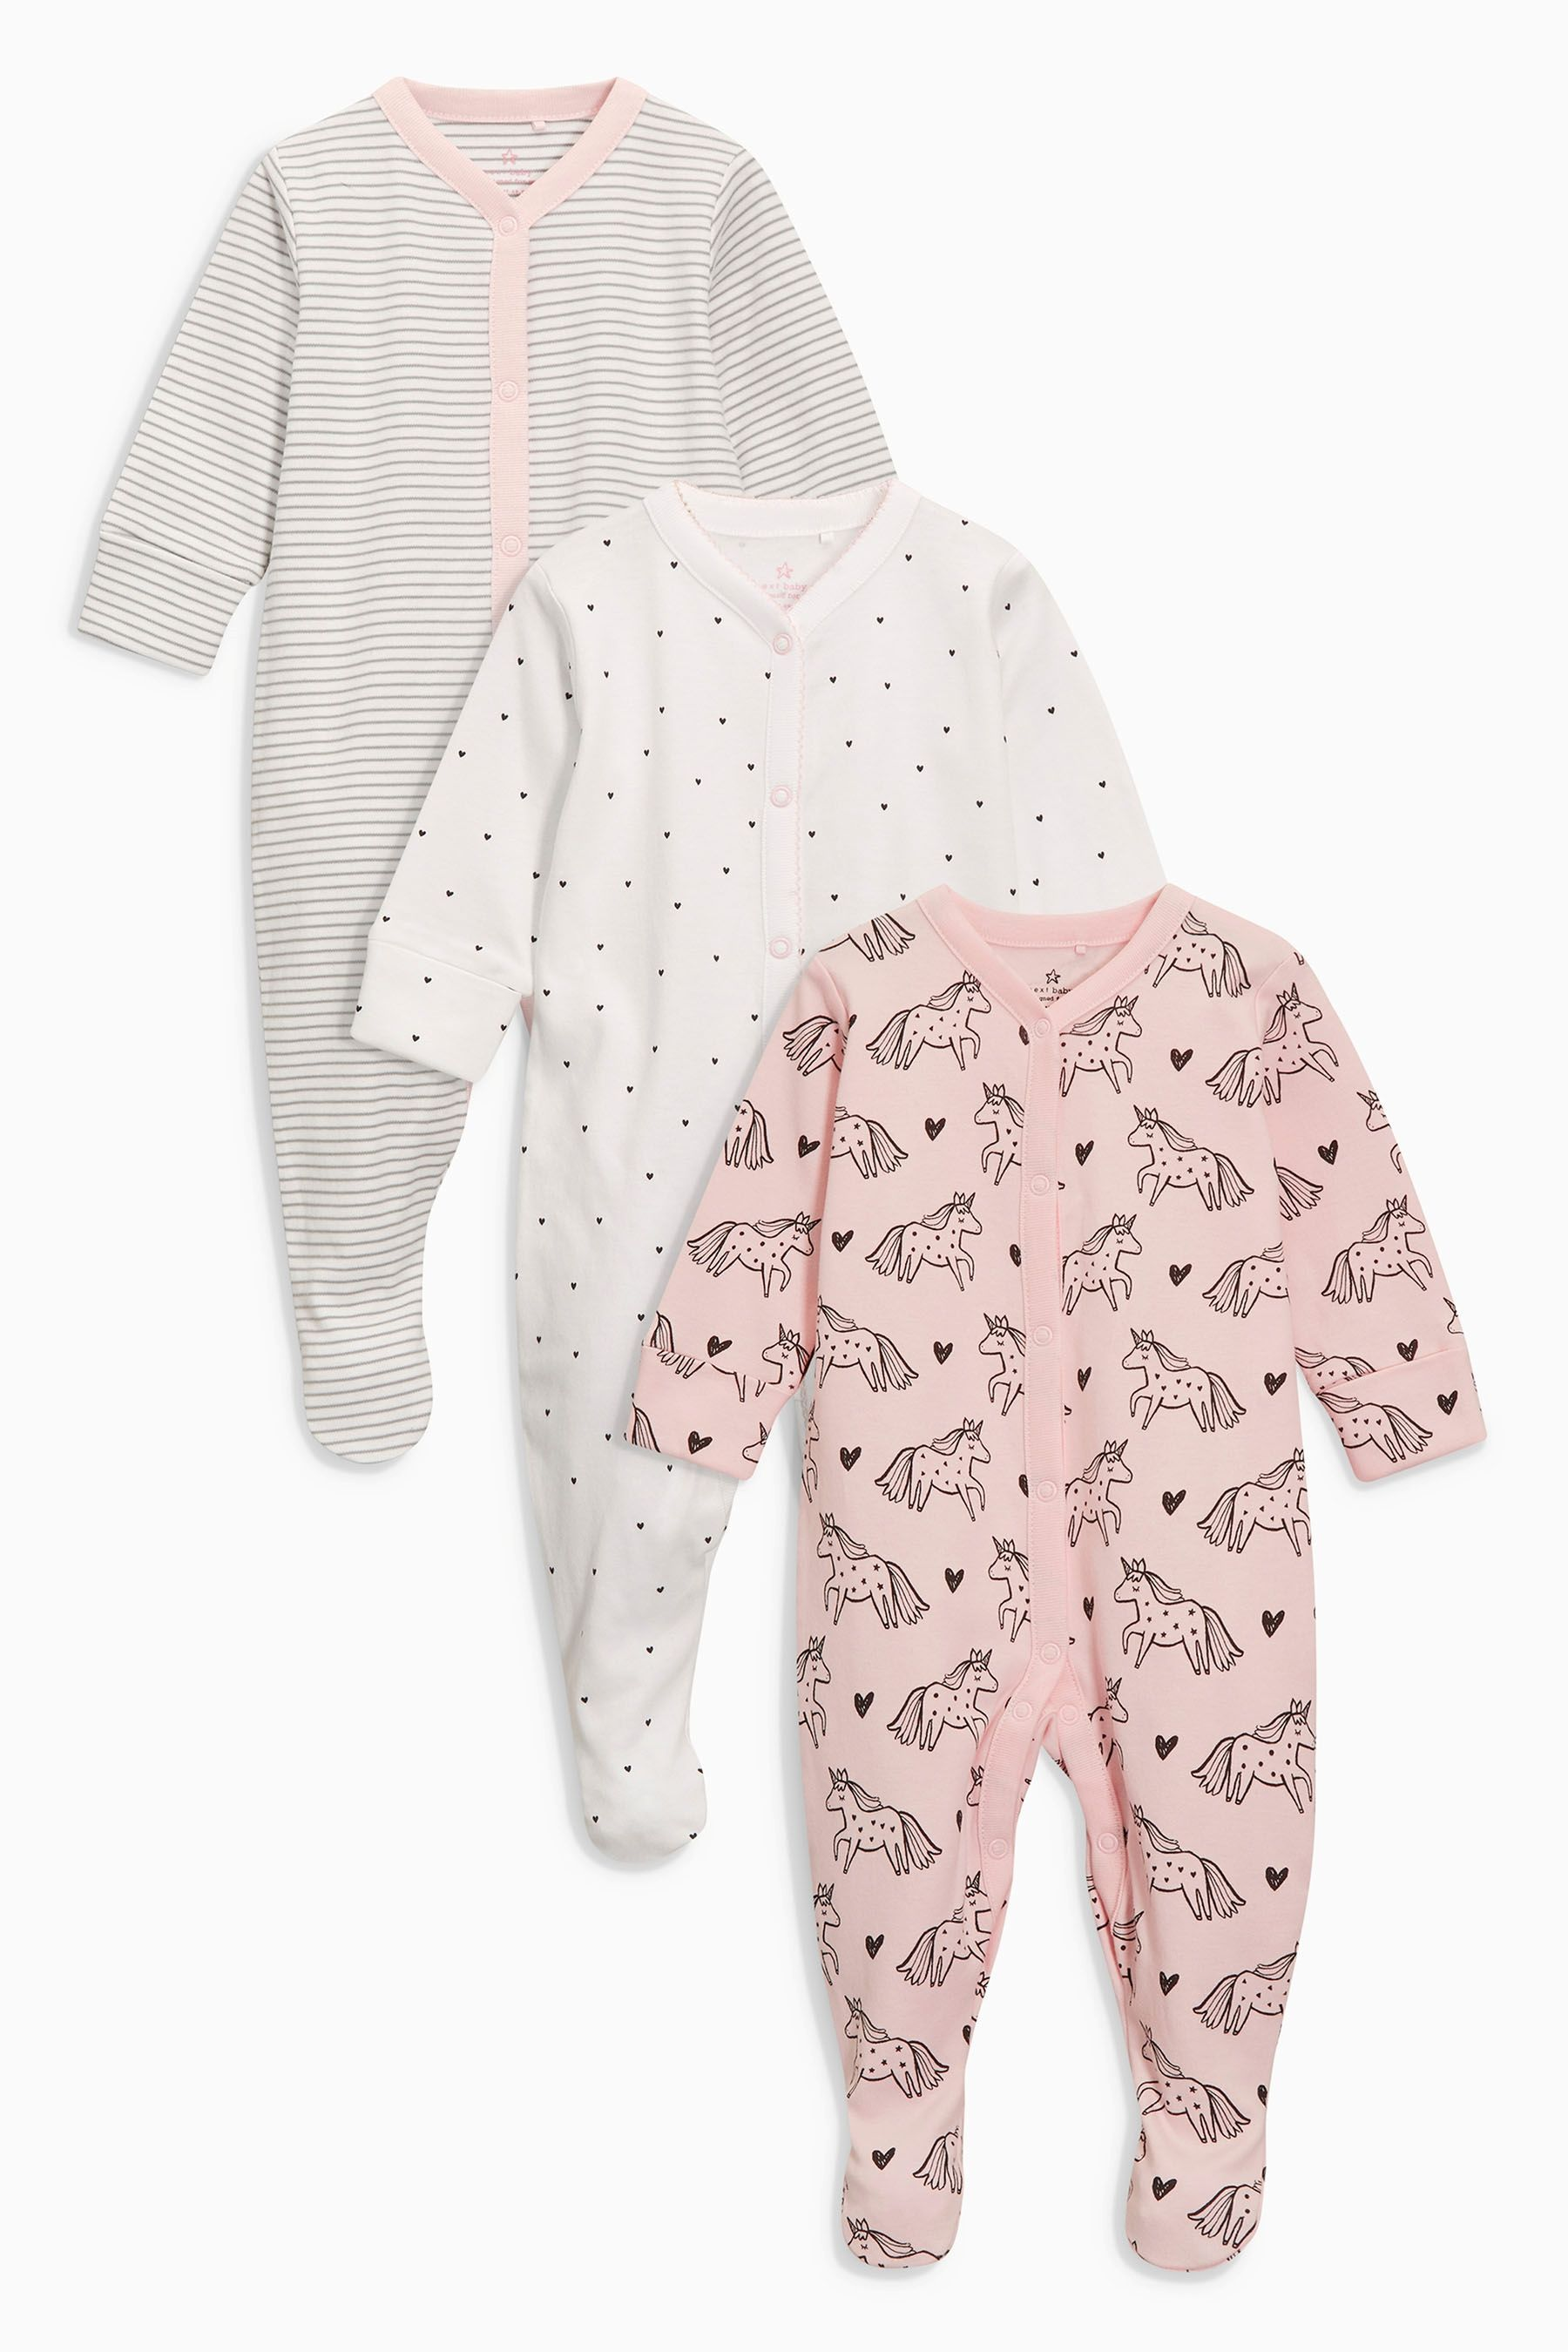 25ce70e1f48d Buy Pink White Unicorn Sleepsuits Three Pack (0mths-2yrs) from the ...